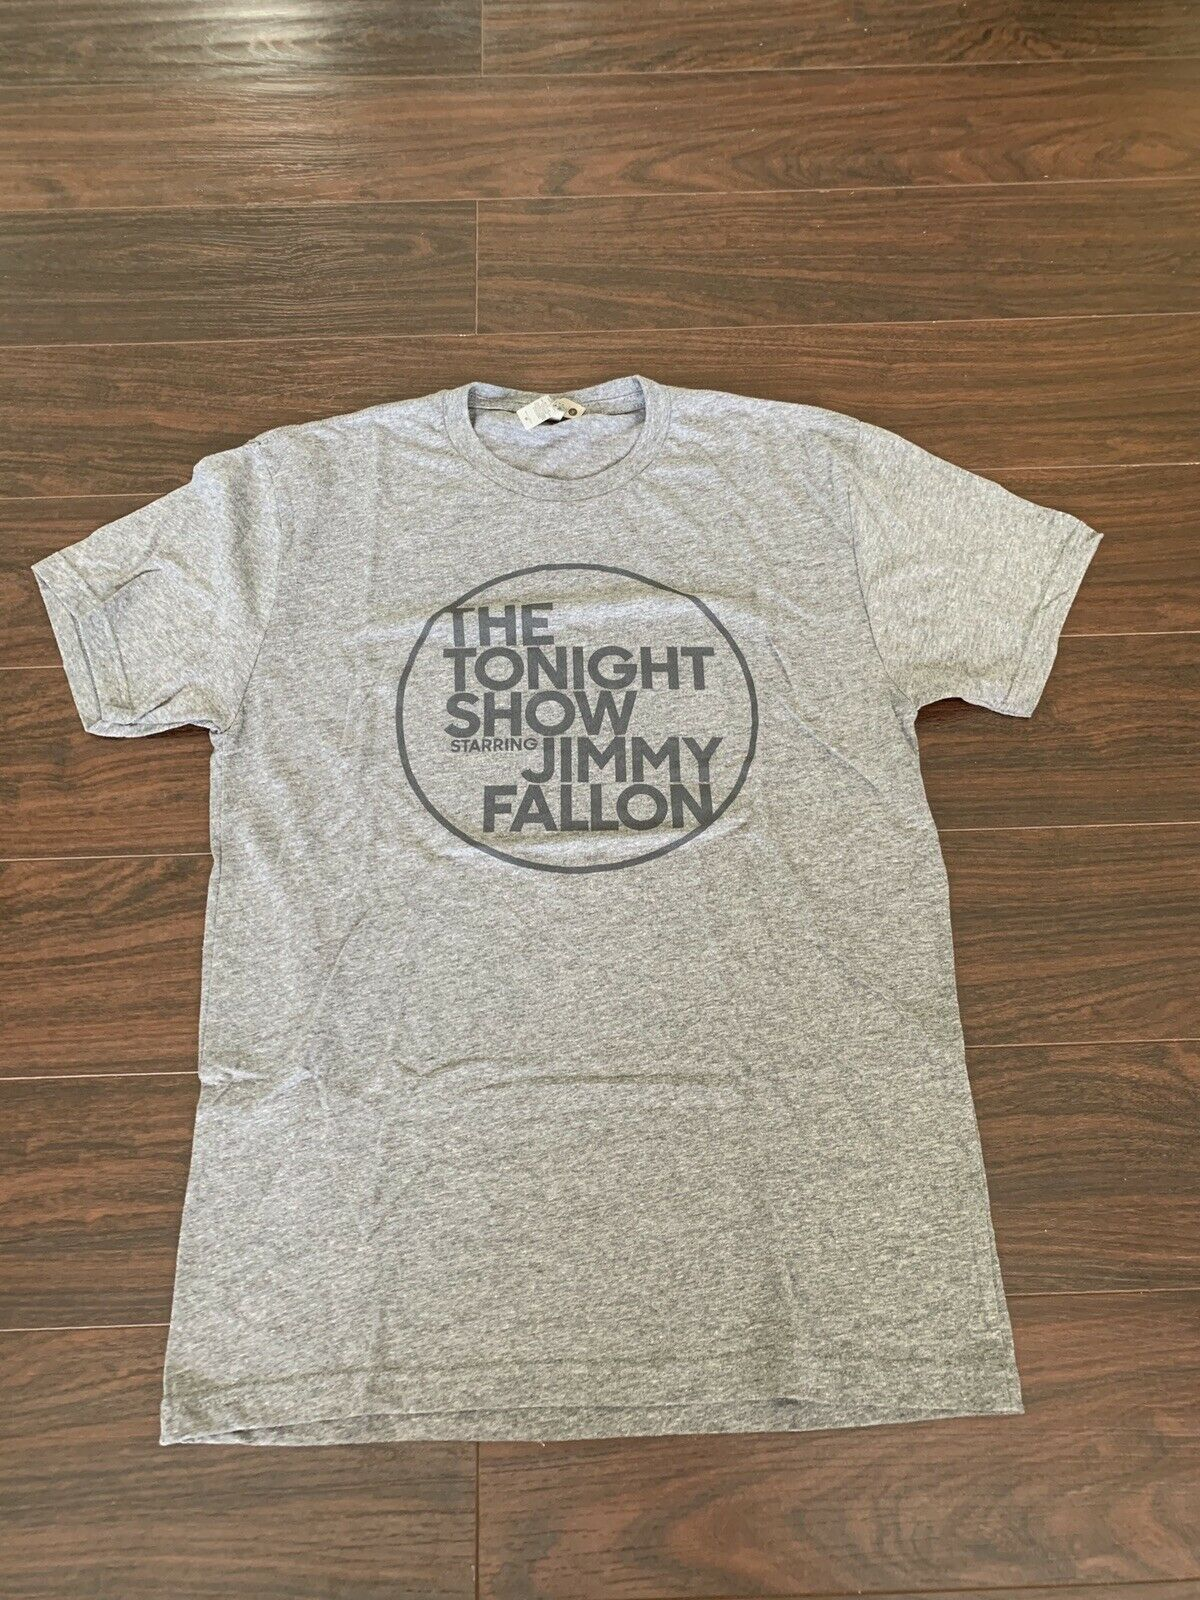 NBC <font><b>The</b></font> <font><b>Tonight</b></font> <font><b>Show</b></font> Starring Jimmy Fallon Thin Gray Medium T Shirt Soft! image